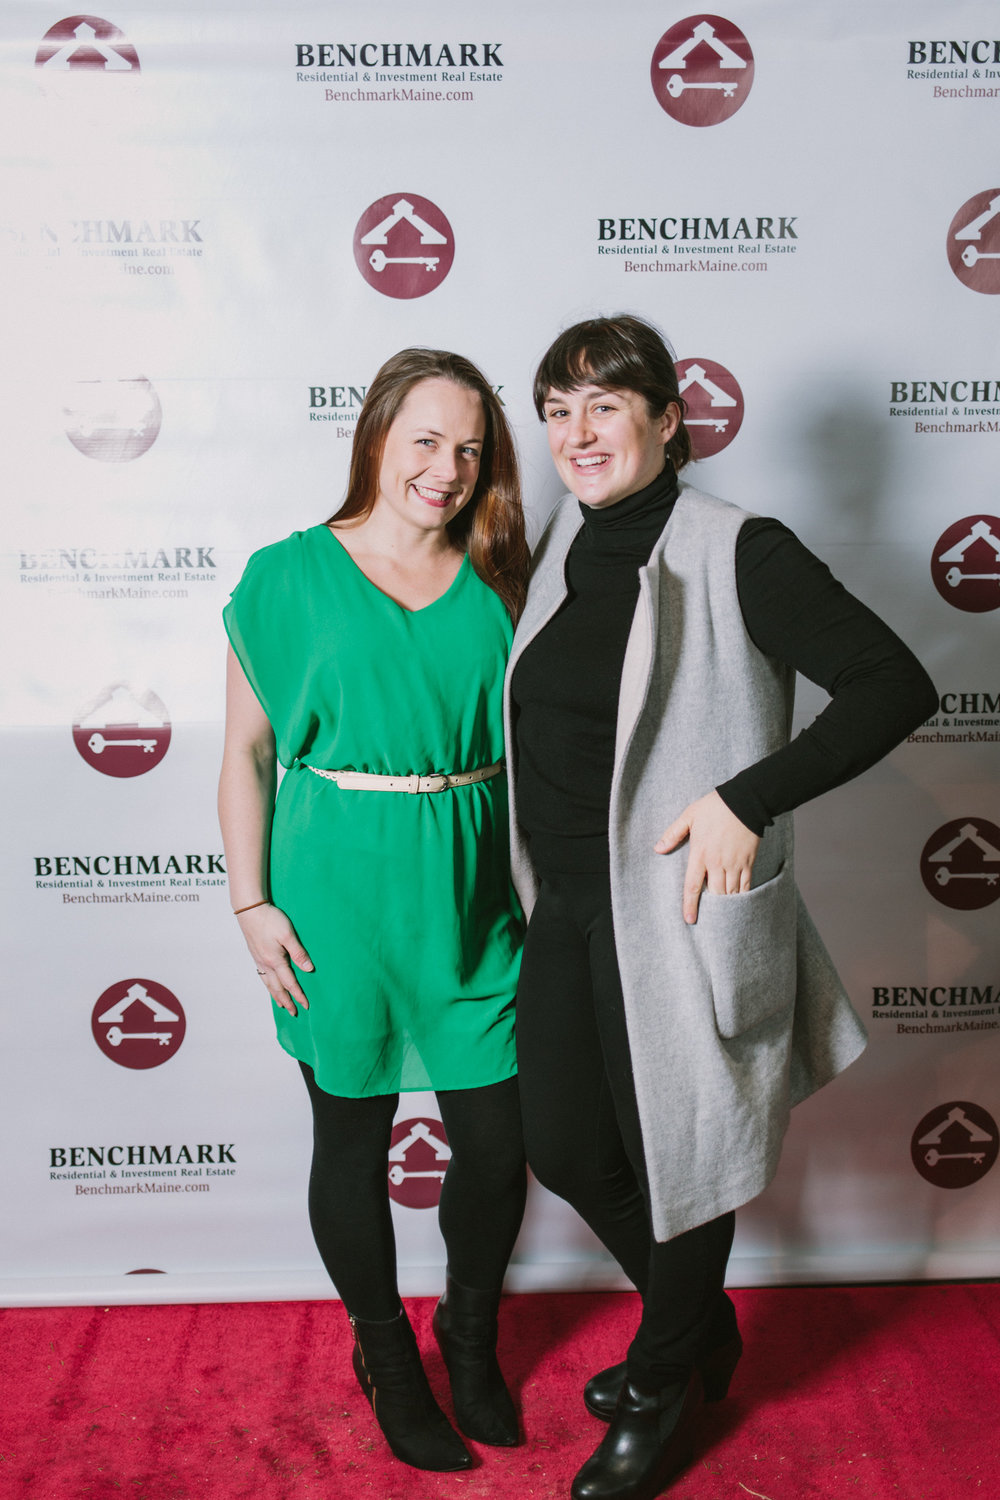 Benchmark_Holiday_Party_SR-057.jpg